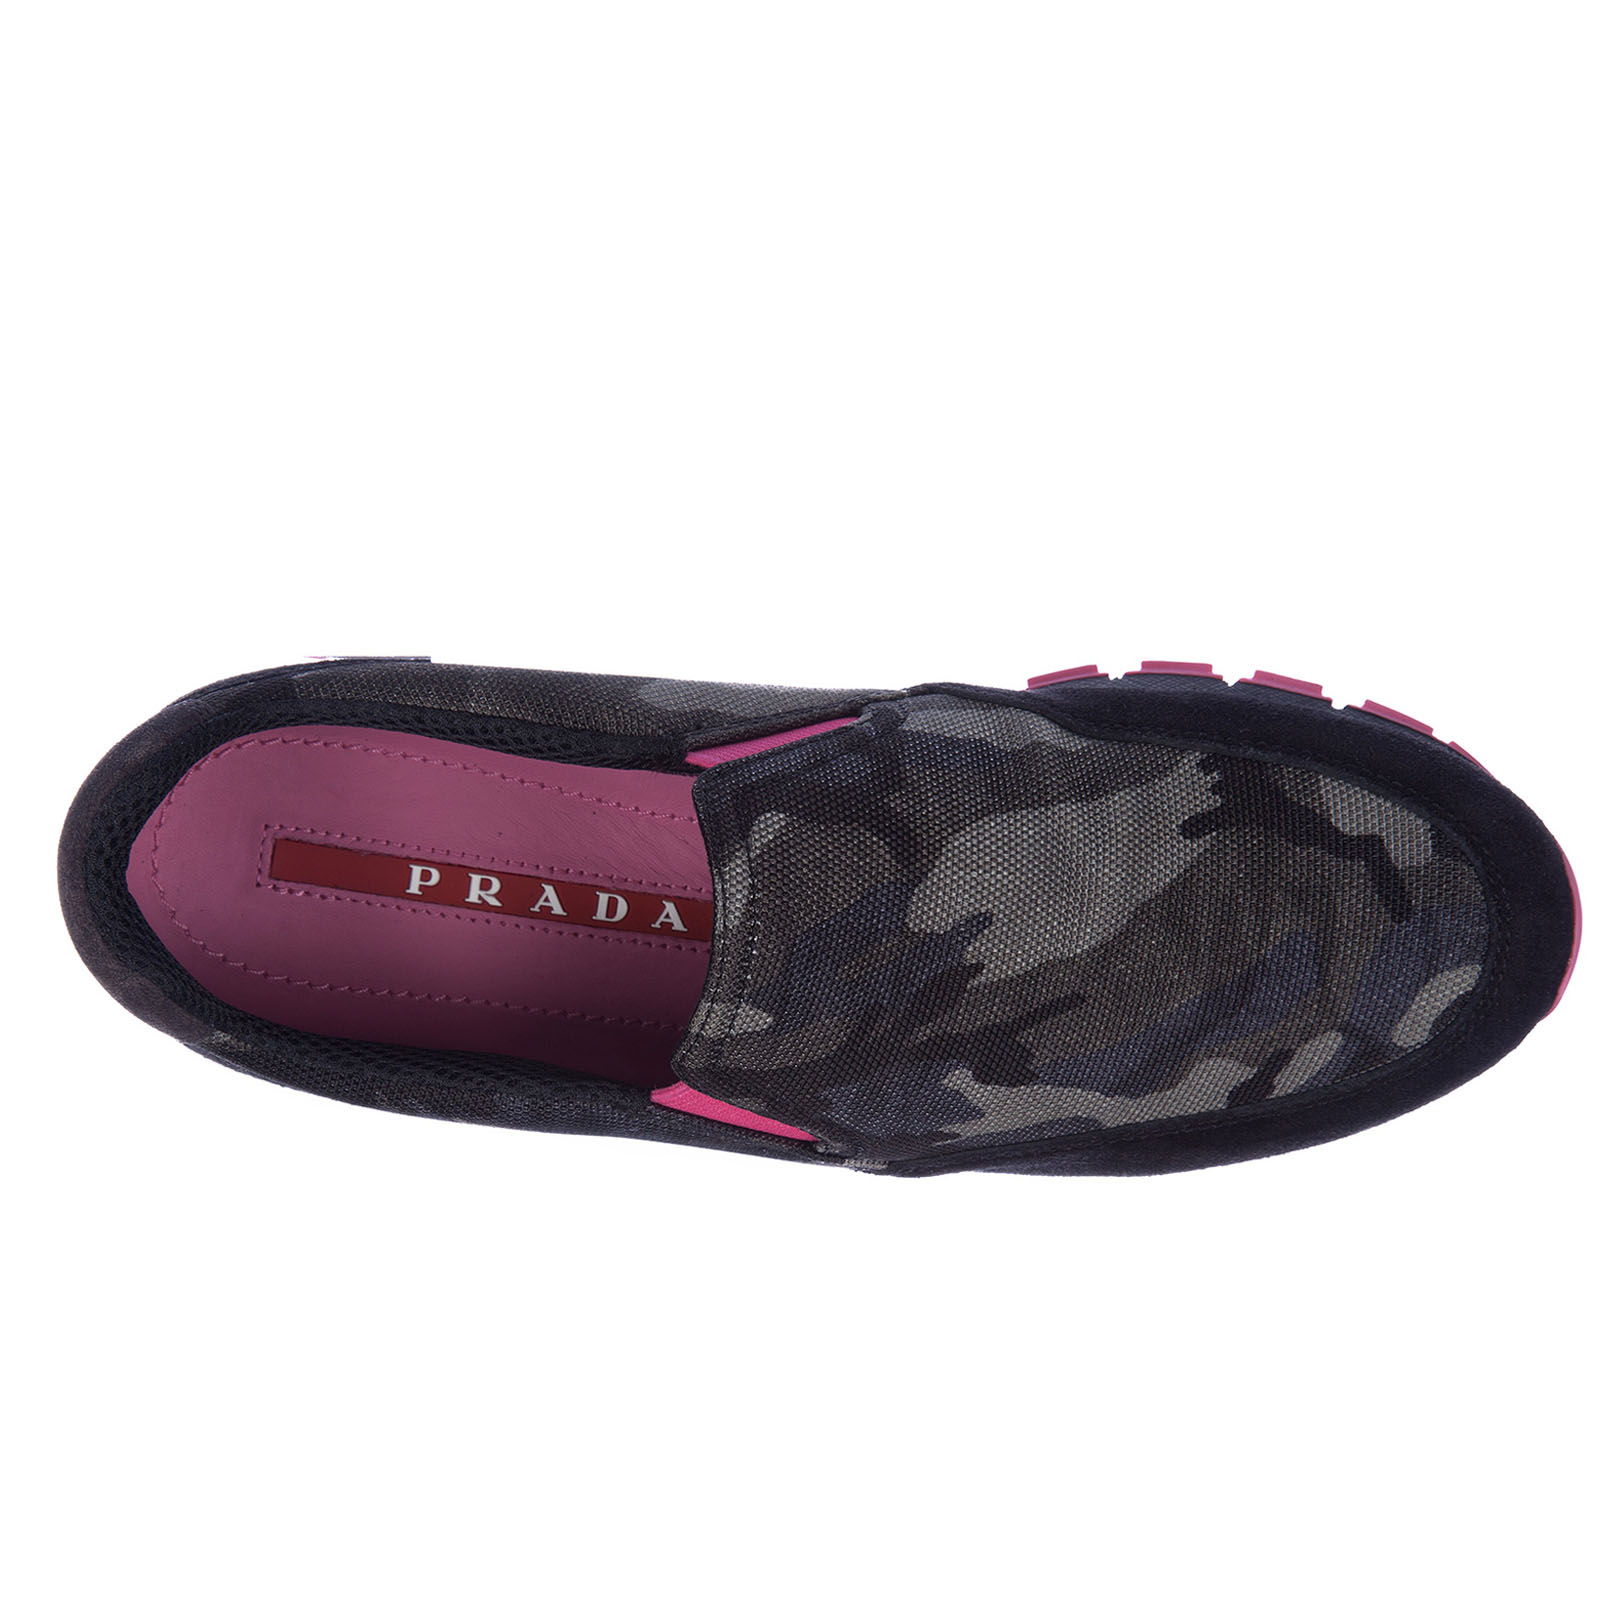 Damen mokassins slip on sneakers camouflage